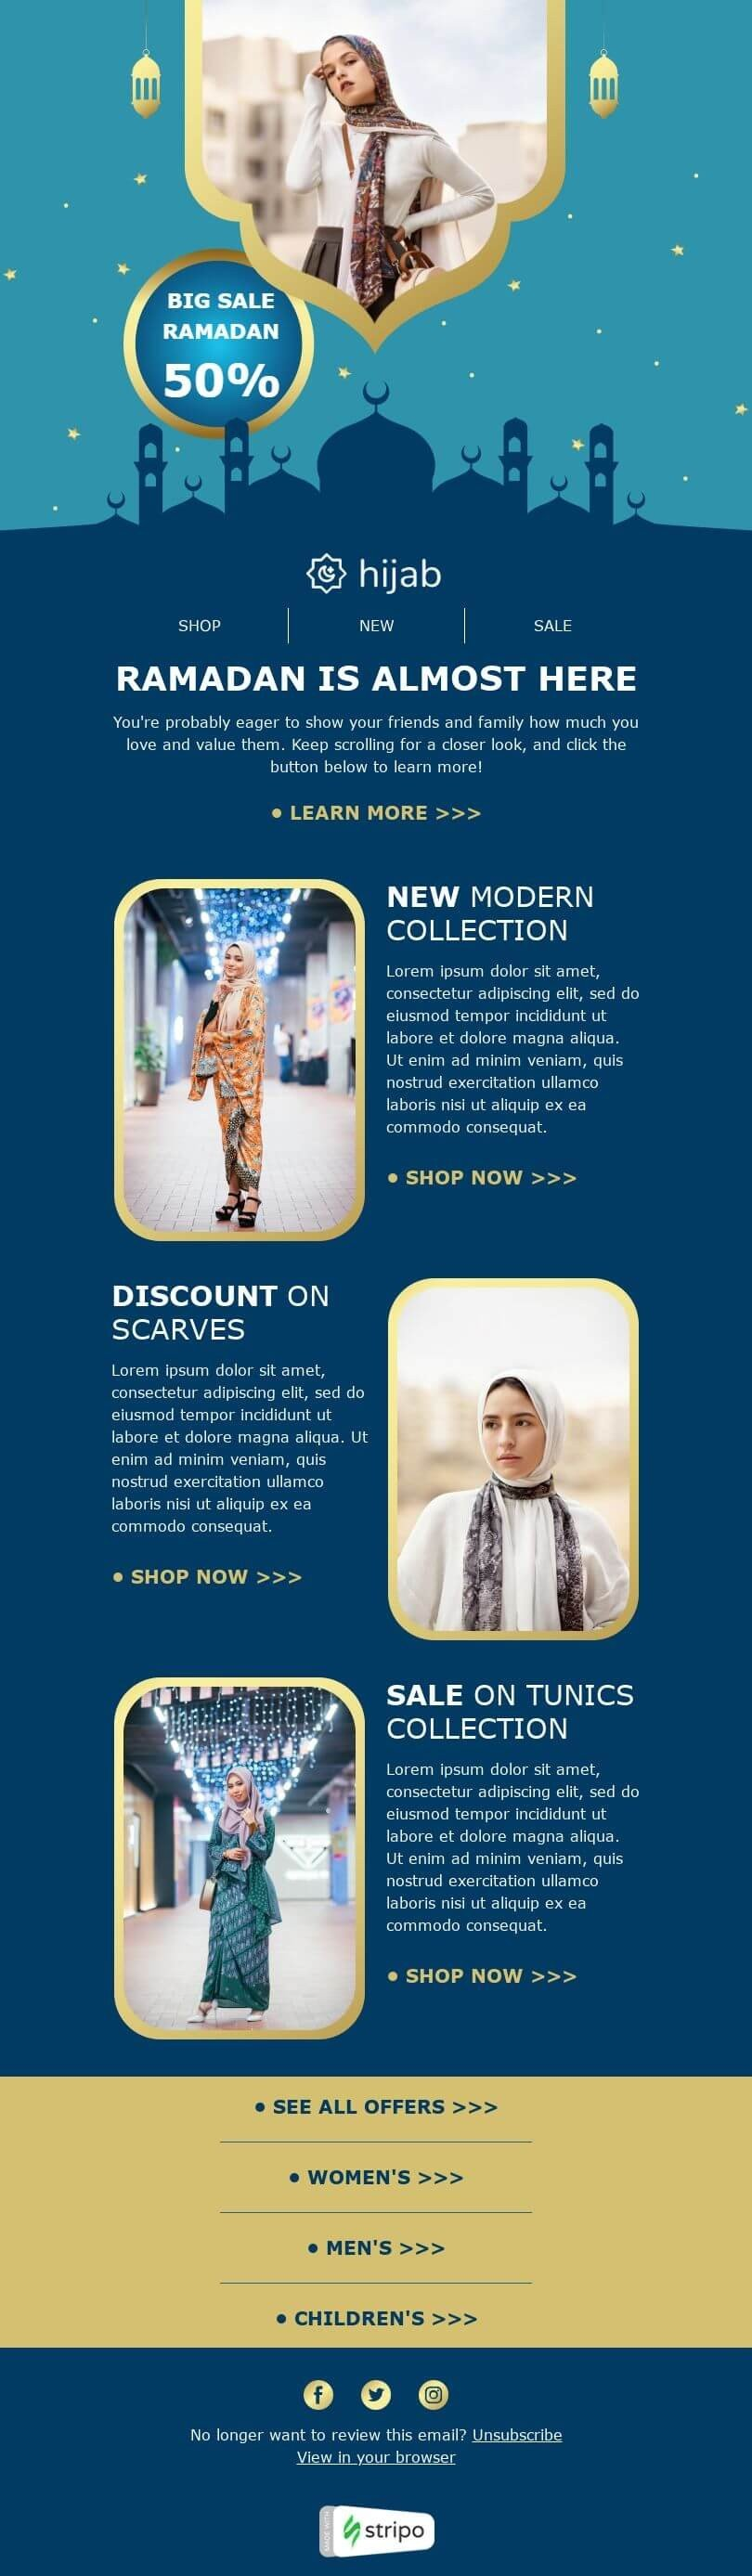 Ramadan Email Template «Hijab sale» for Fashion industry desktop view